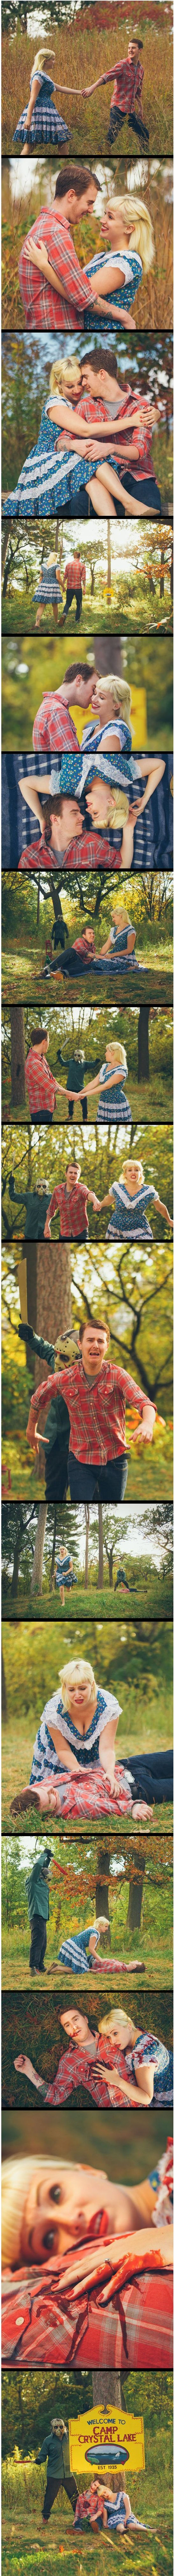 horror themed engagement photos <<< Well, that escalated quickly.